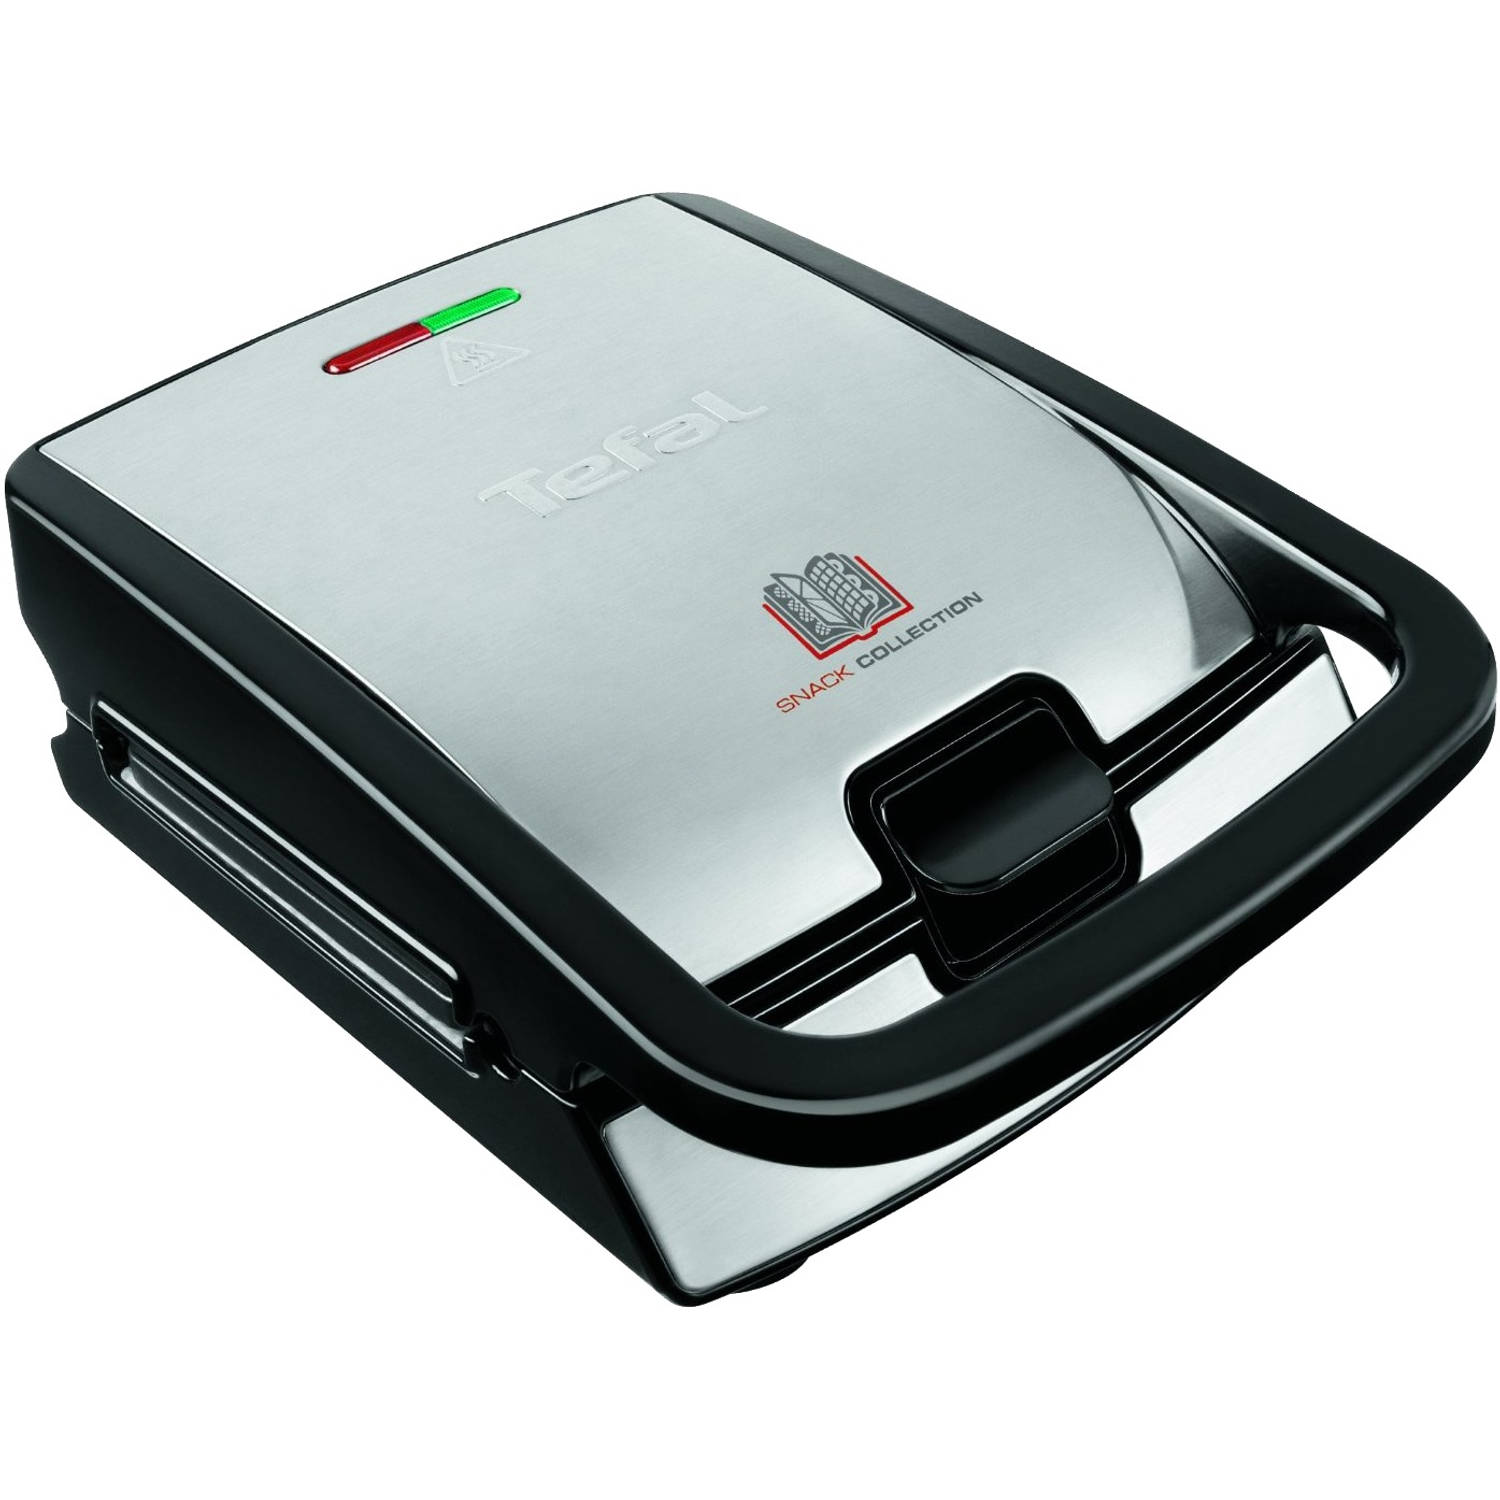 Tefal snack collection sw 852d tostiapparaat